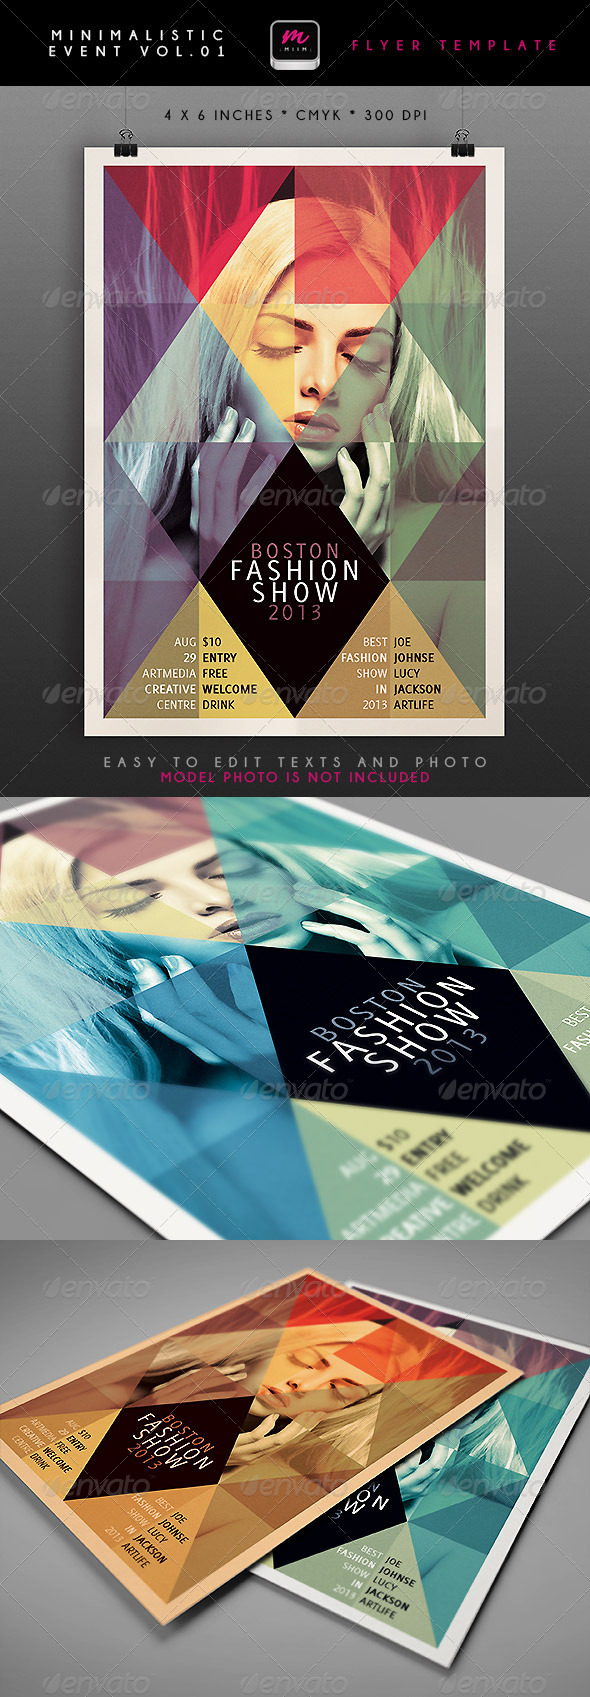 Minimalistic Event Flyer 1 - Events Flyers